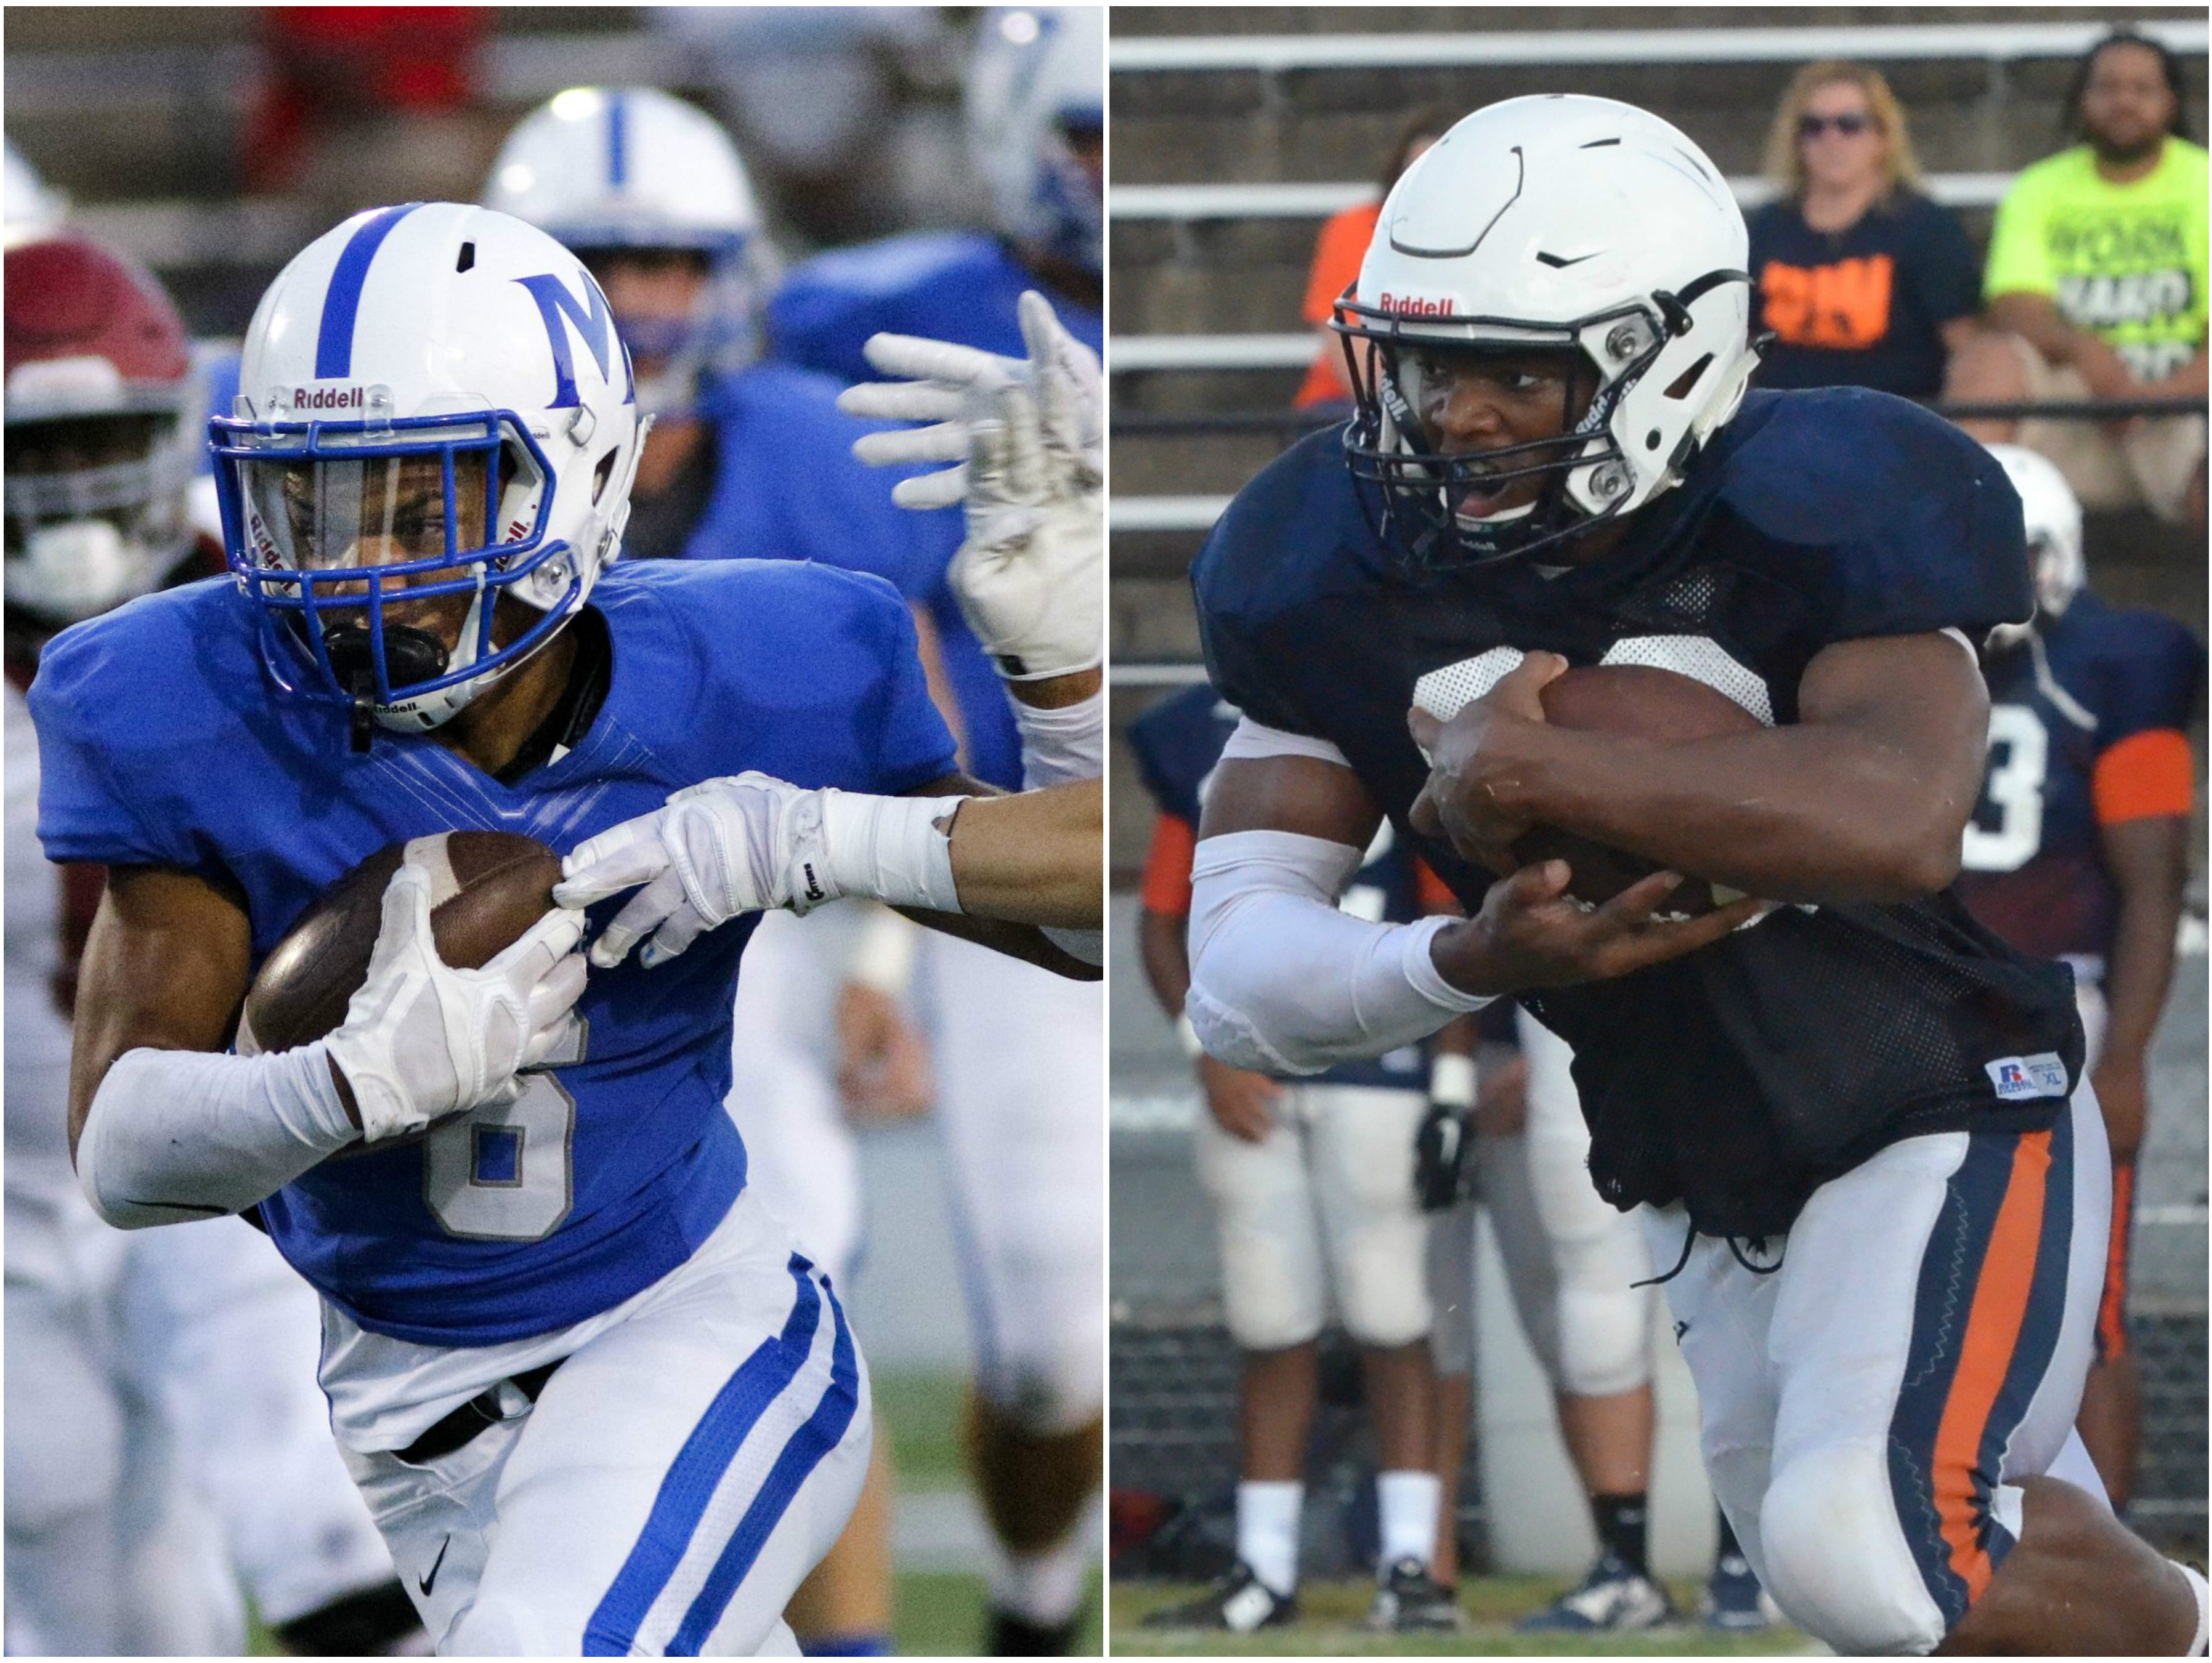 McCallie running back Rico Dozier (left) and Blackman running back Master Teague (right)